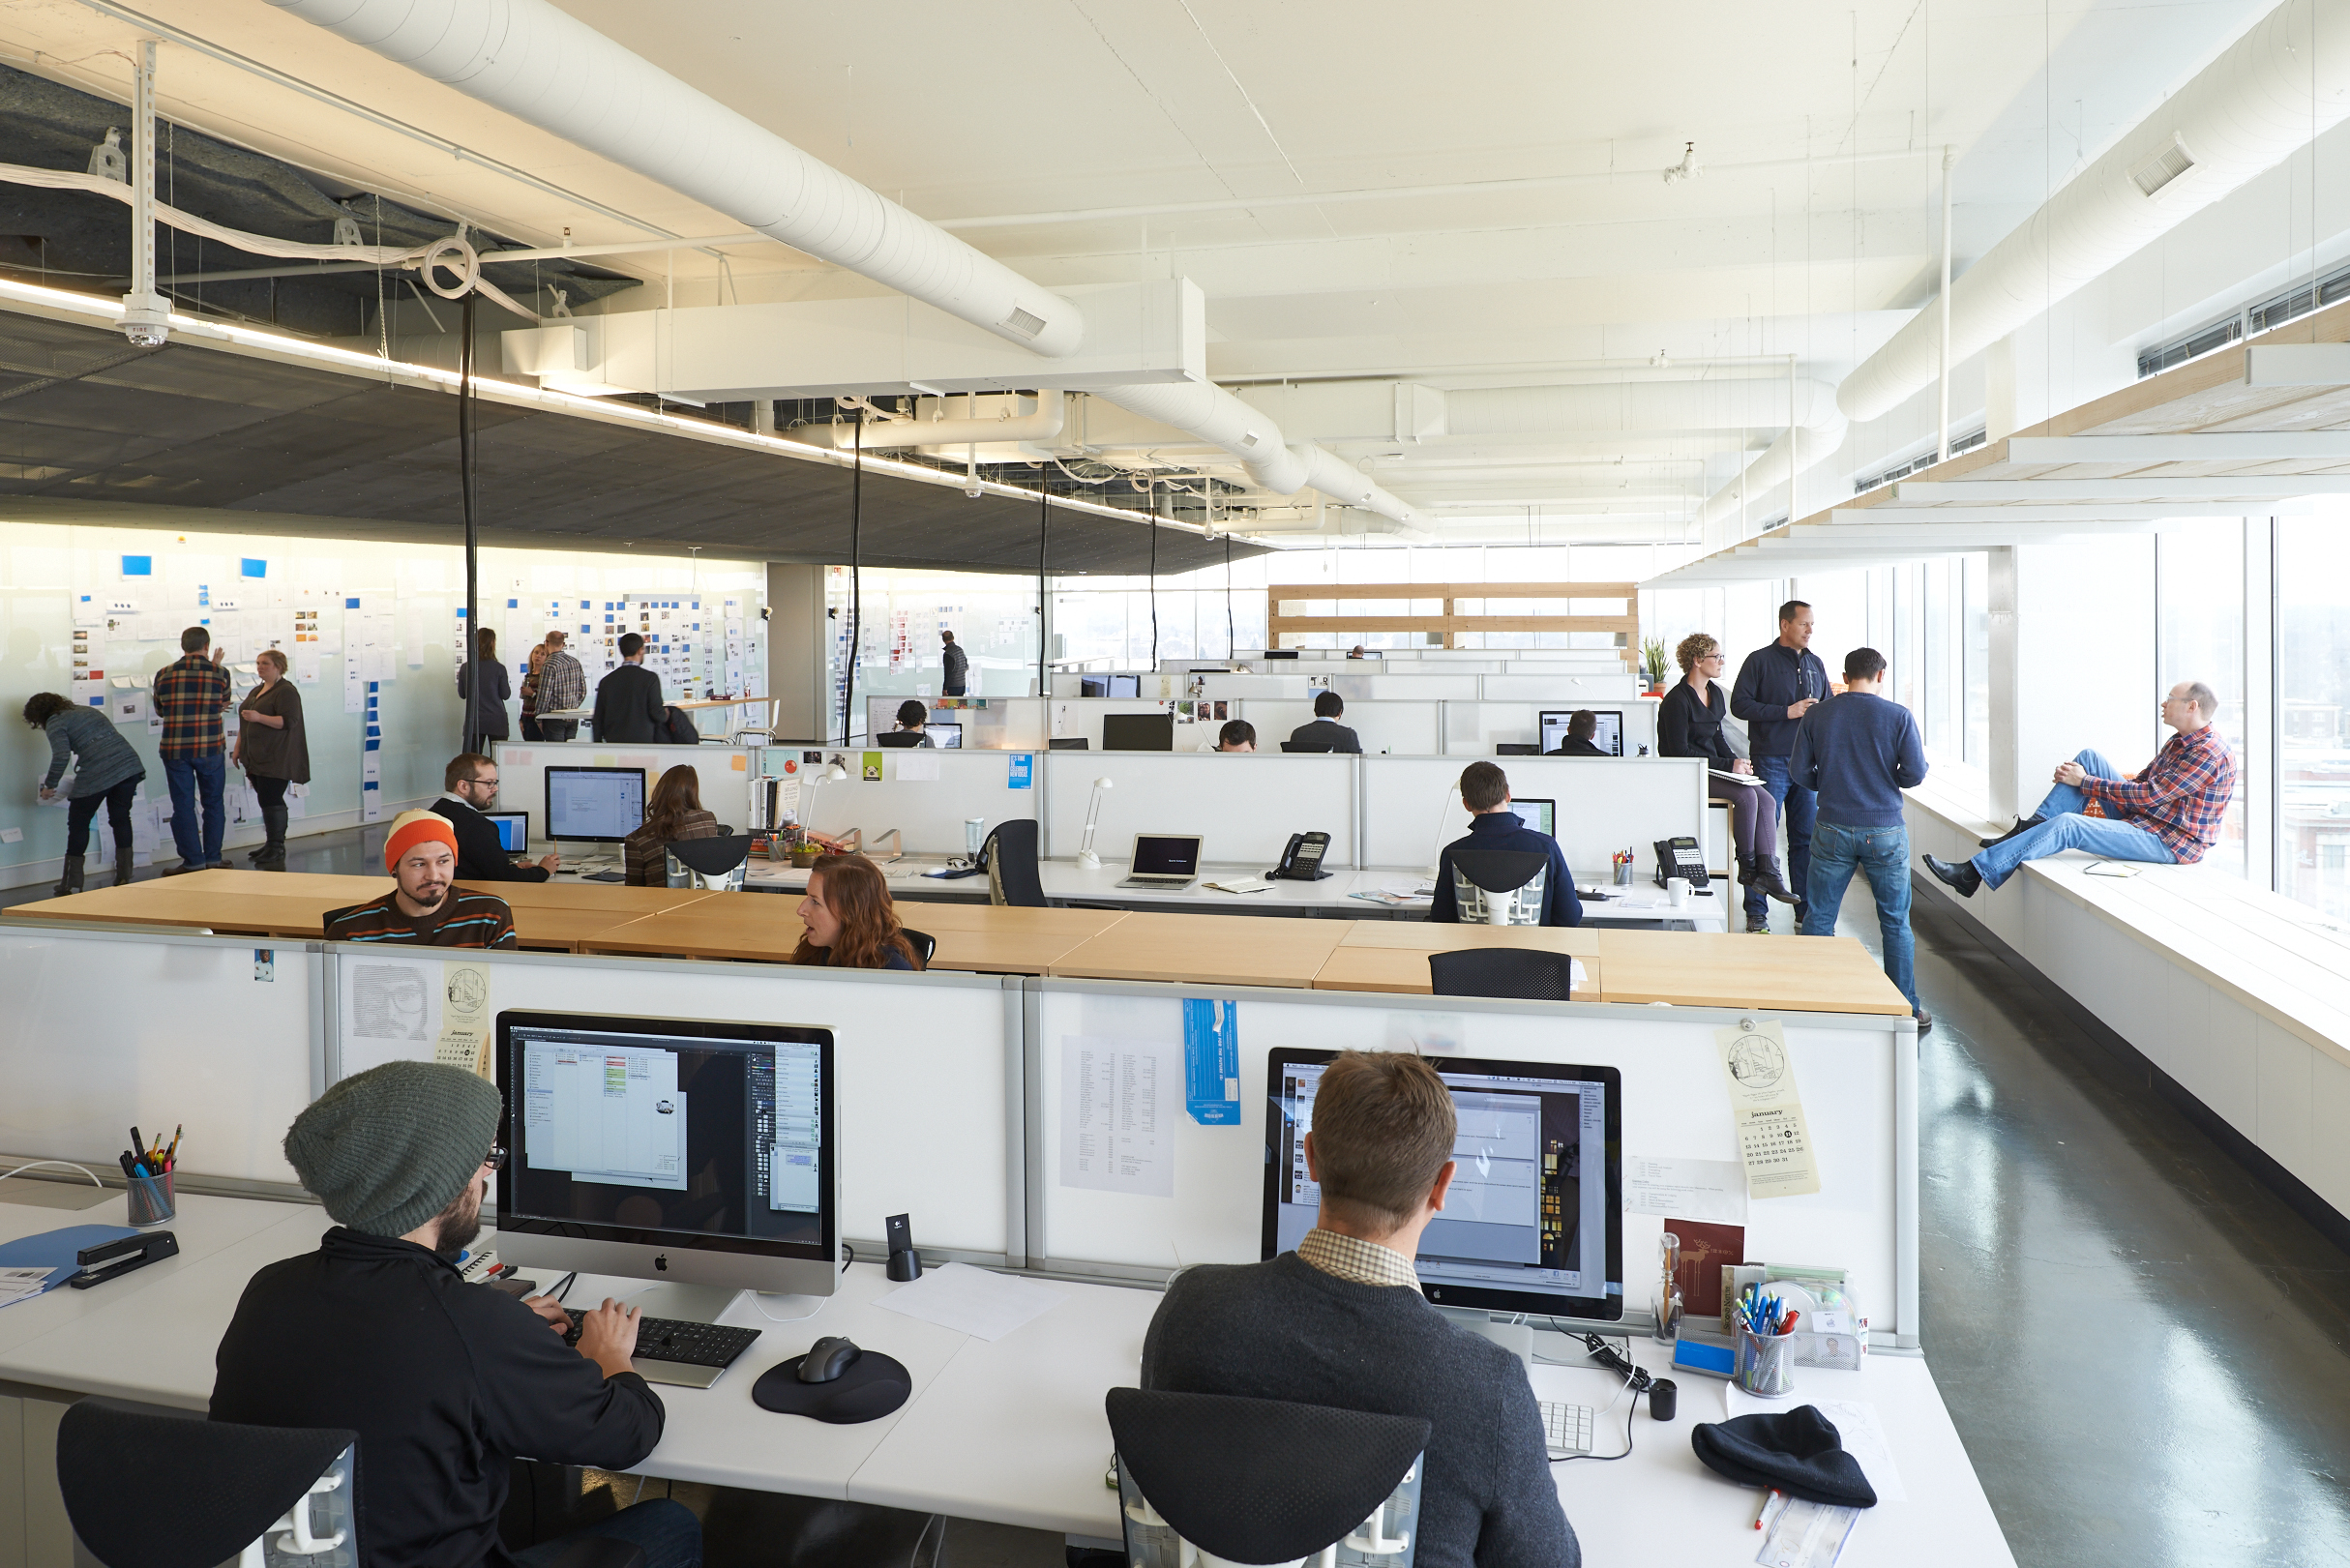 An idea wall for collaborative brainstorming runs parallel to rows of individual work tables, keeping employees connected.